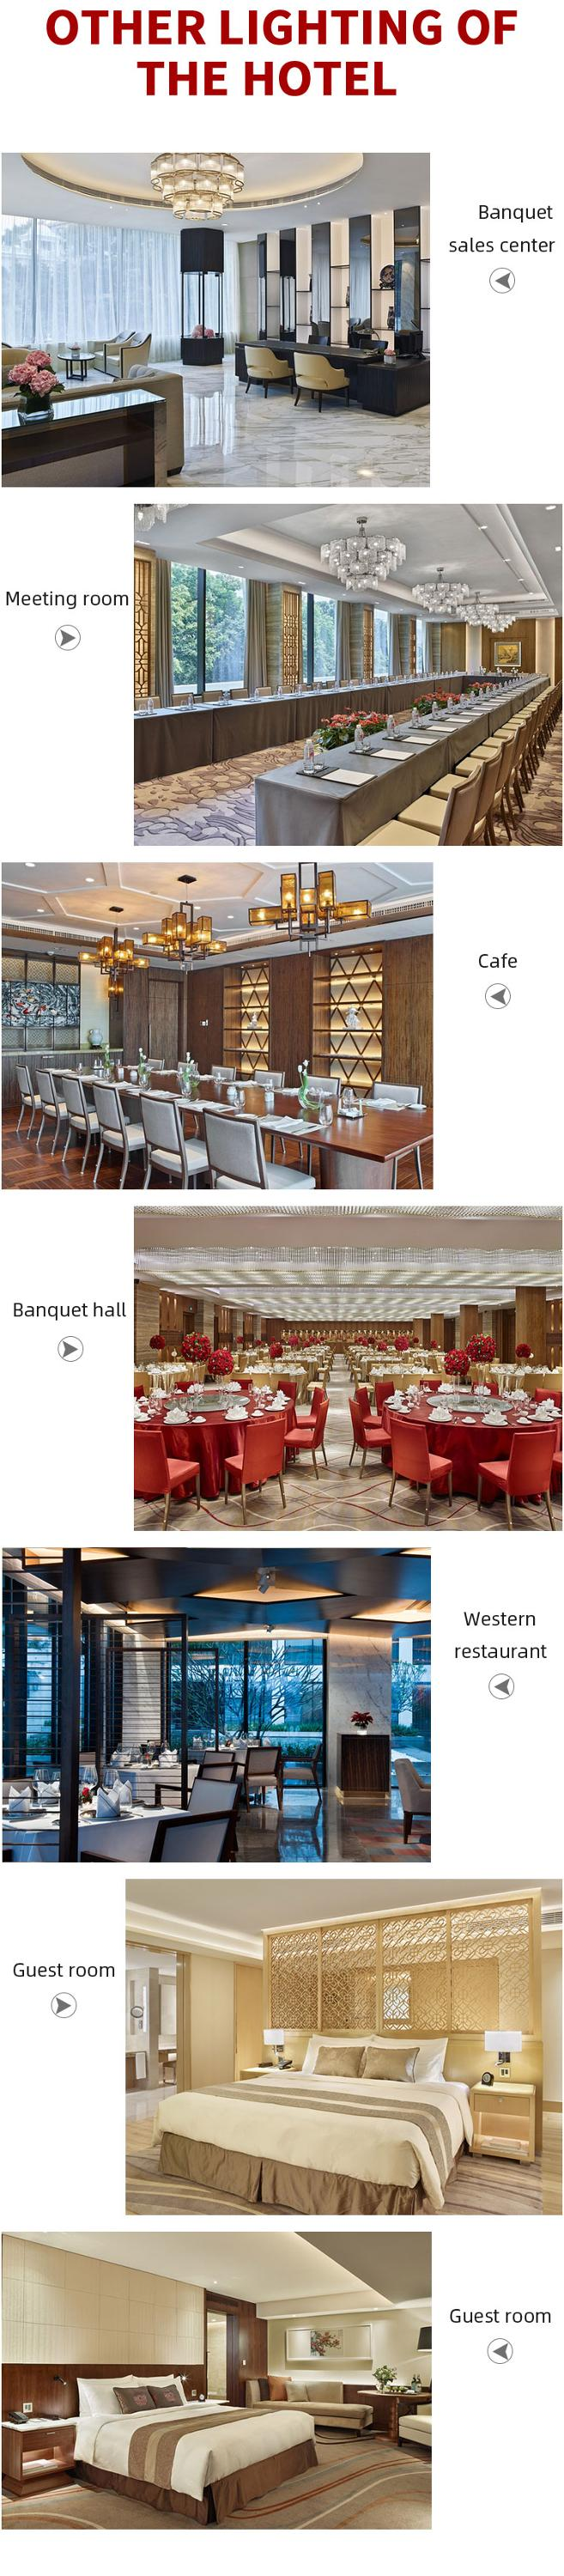 WHITE SWAN GUANGZHOU hotel projects prices chandelier luxury baccarat crystal chandelier banquet hall style chandelier lighting